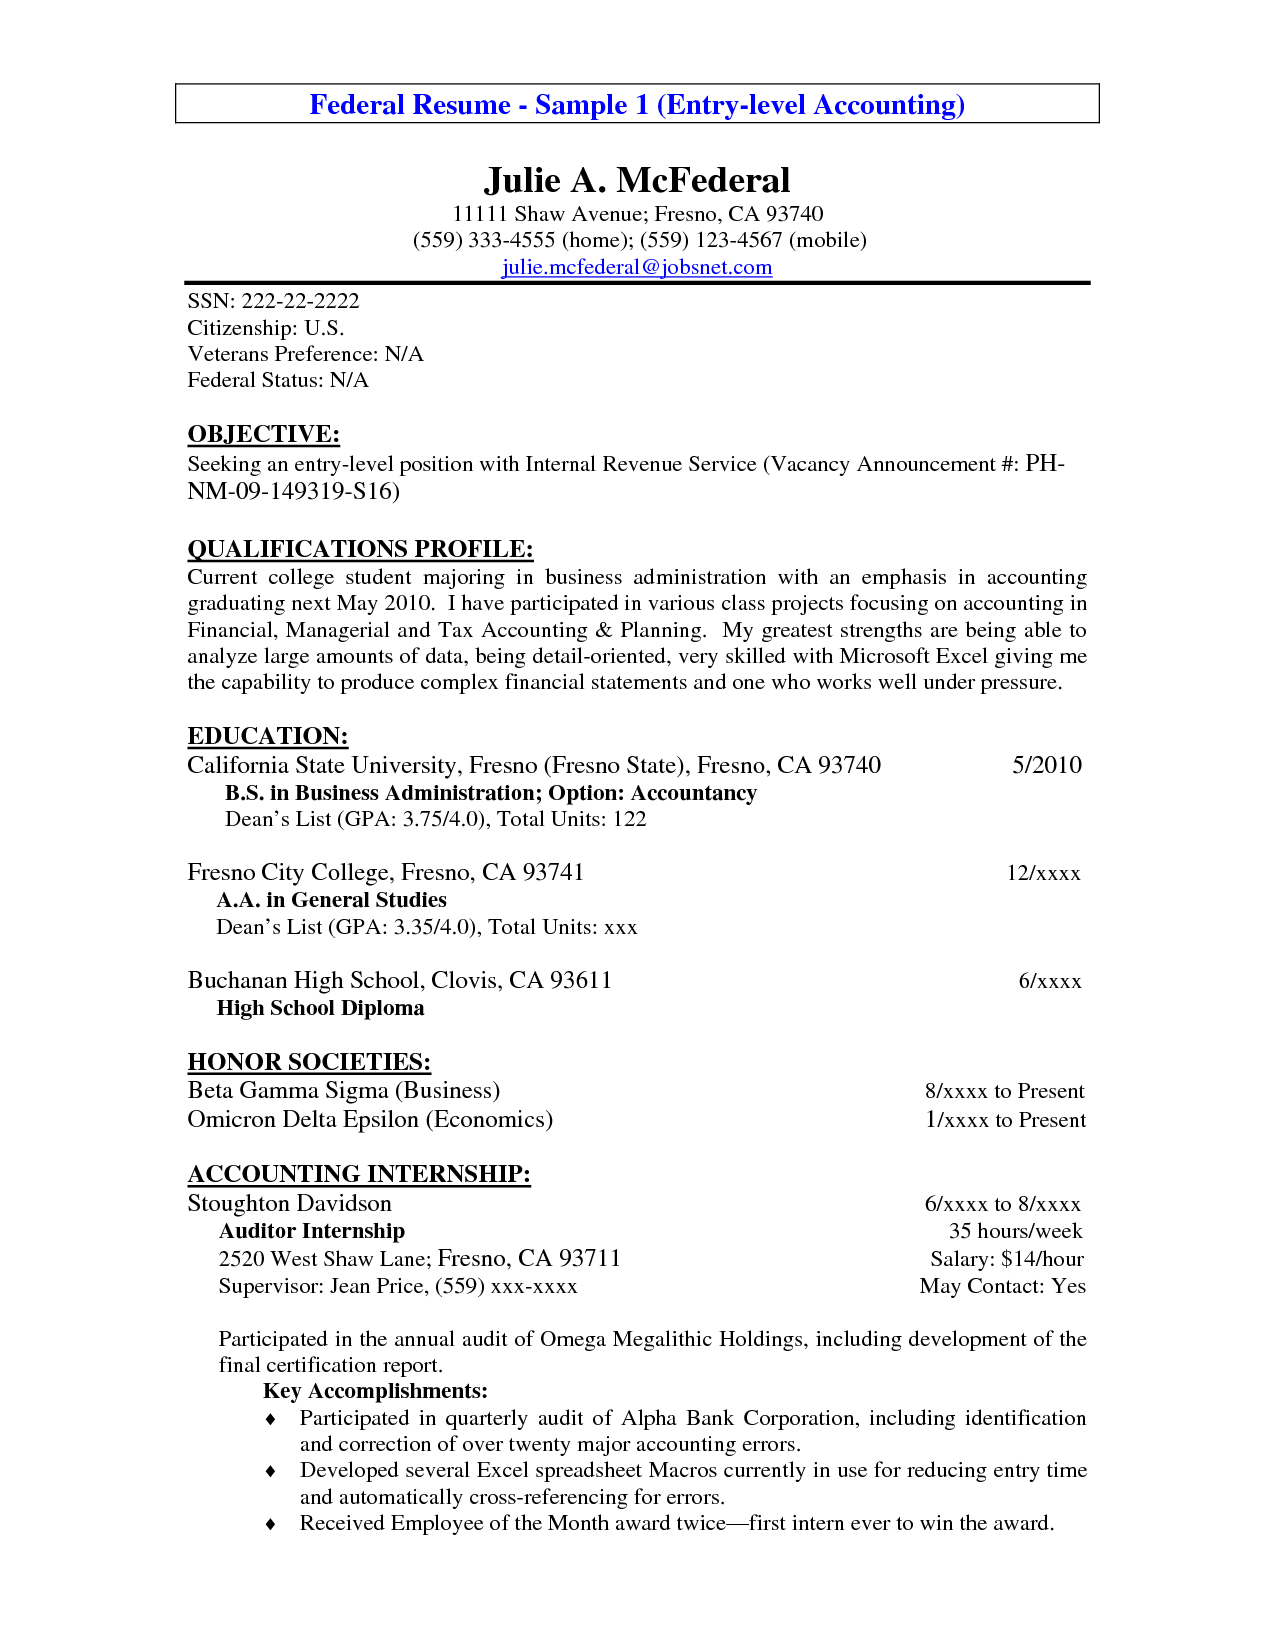 How To Write An Entry Level Resume Enchanting Ann Debusschere A_Debusschere On Pinterest